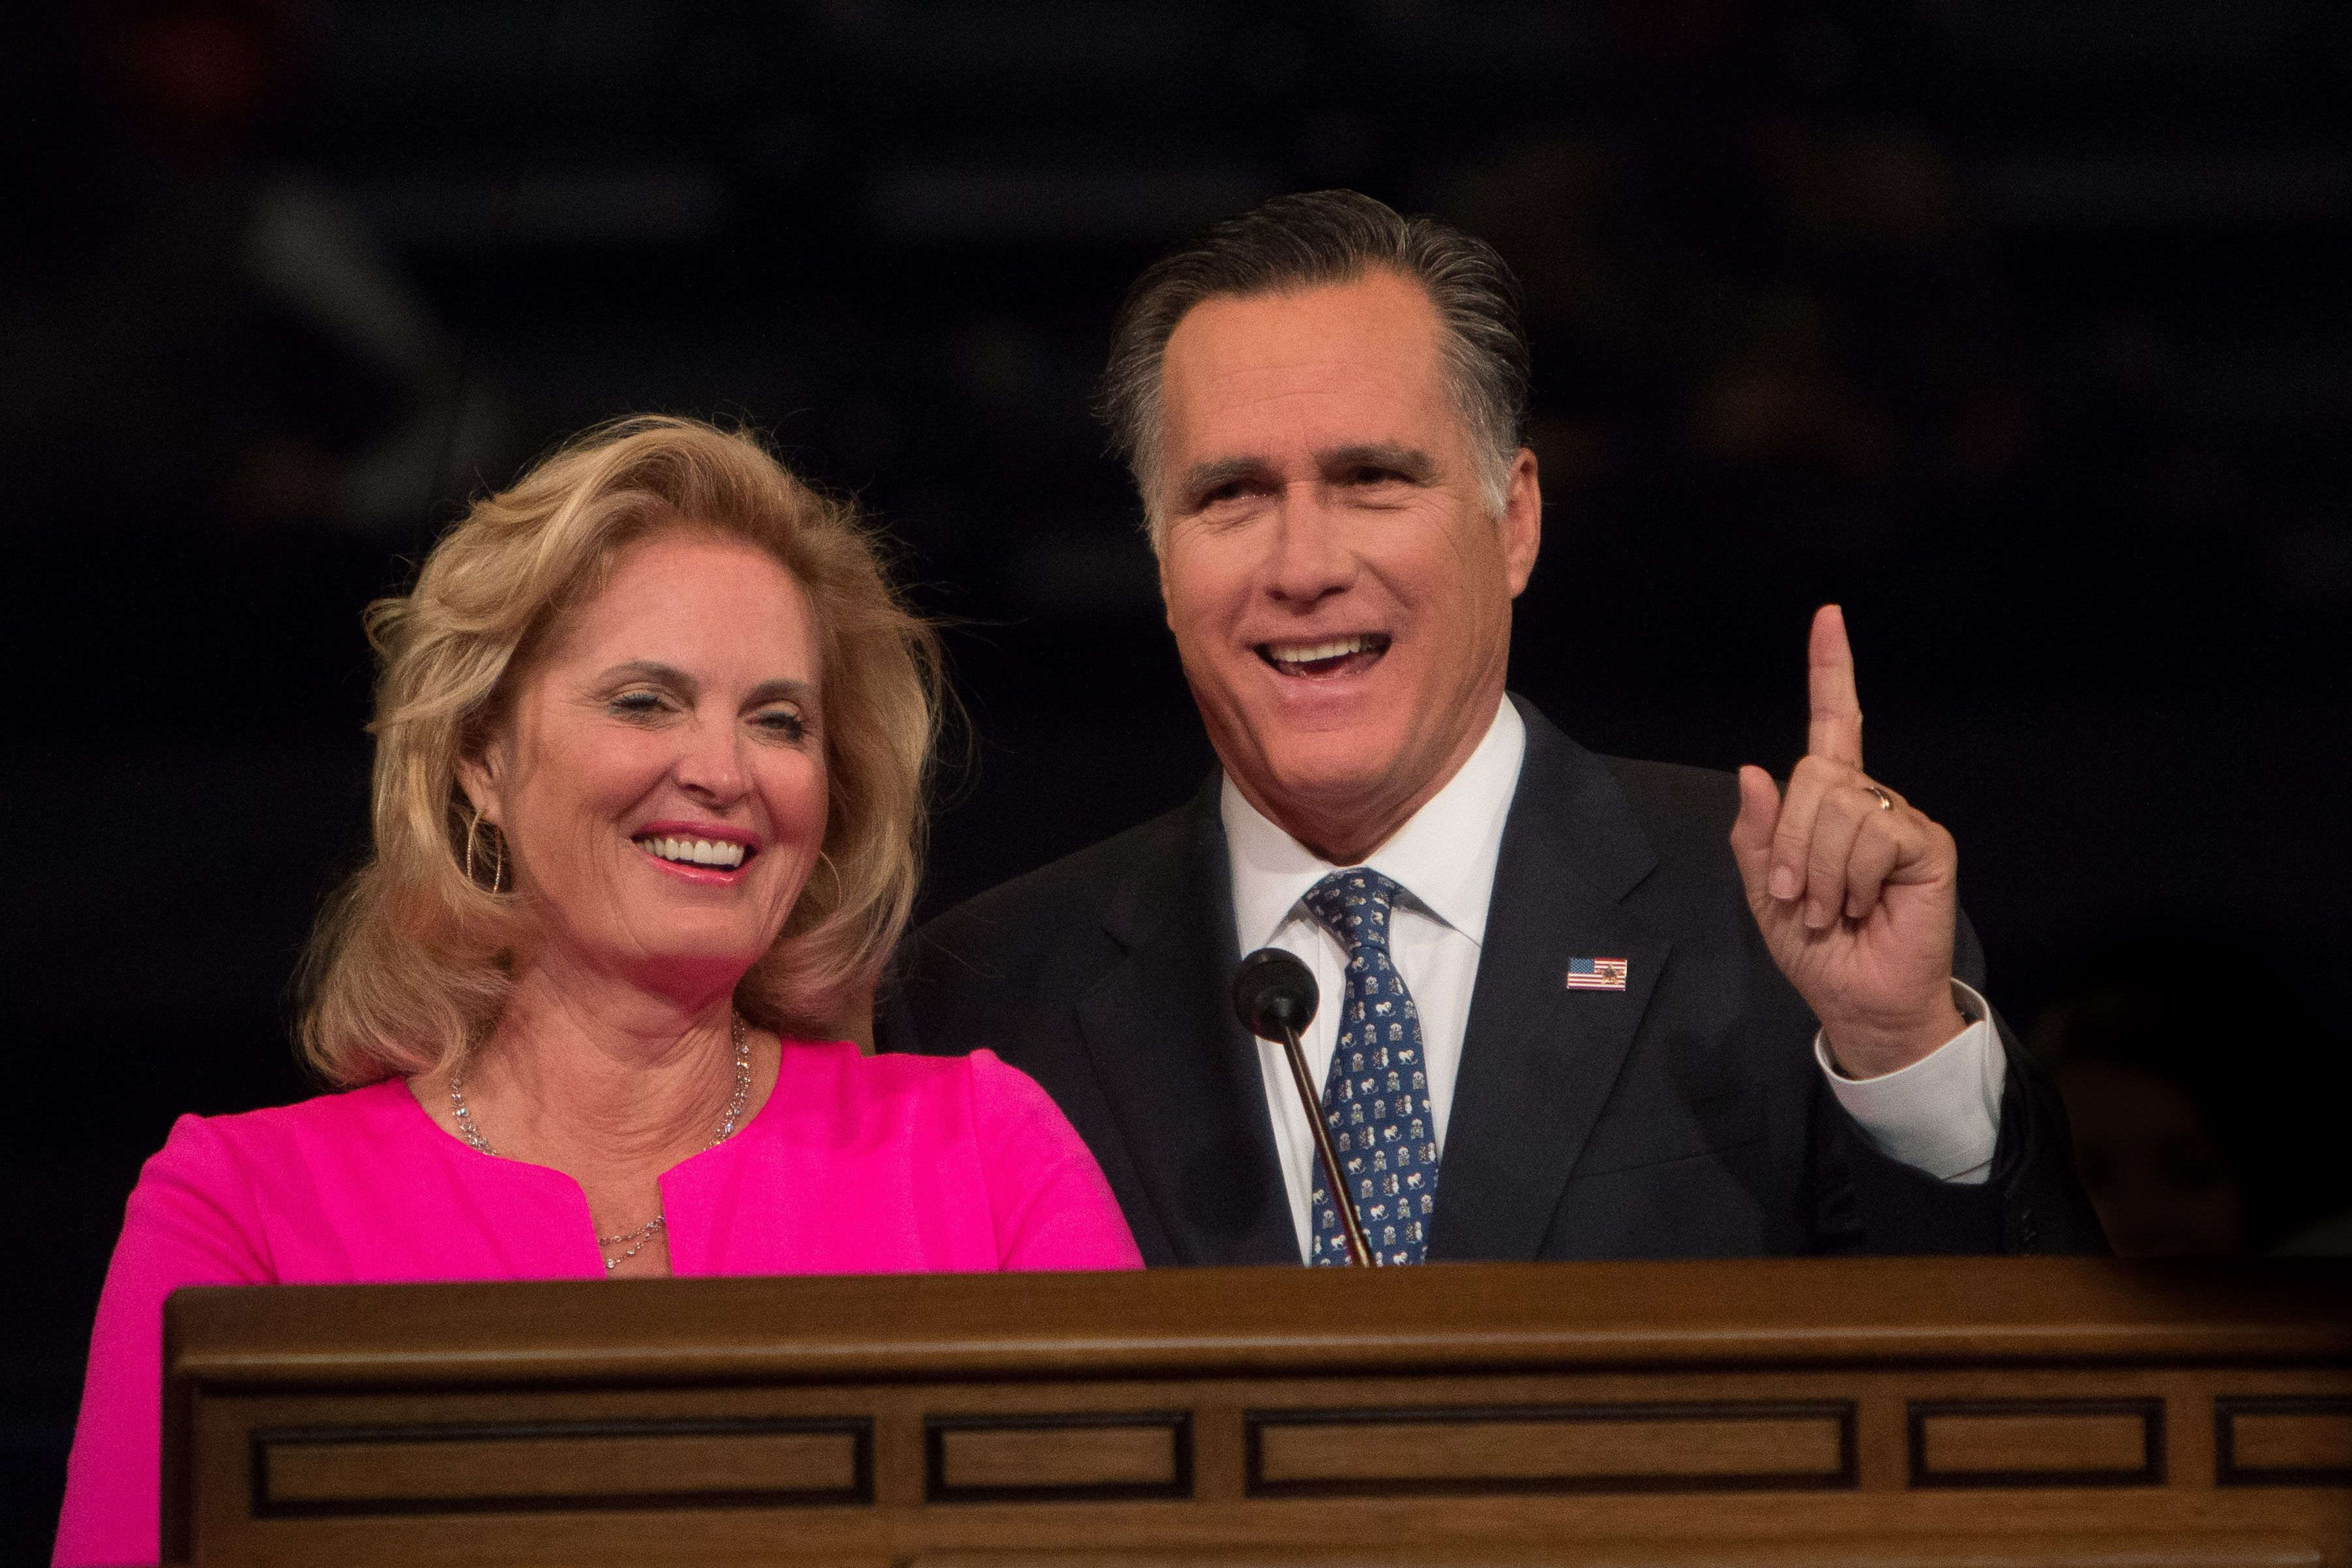 BYU's Daily Universe reports on Mitt Romney at BYU: 'Life lessons from the front'